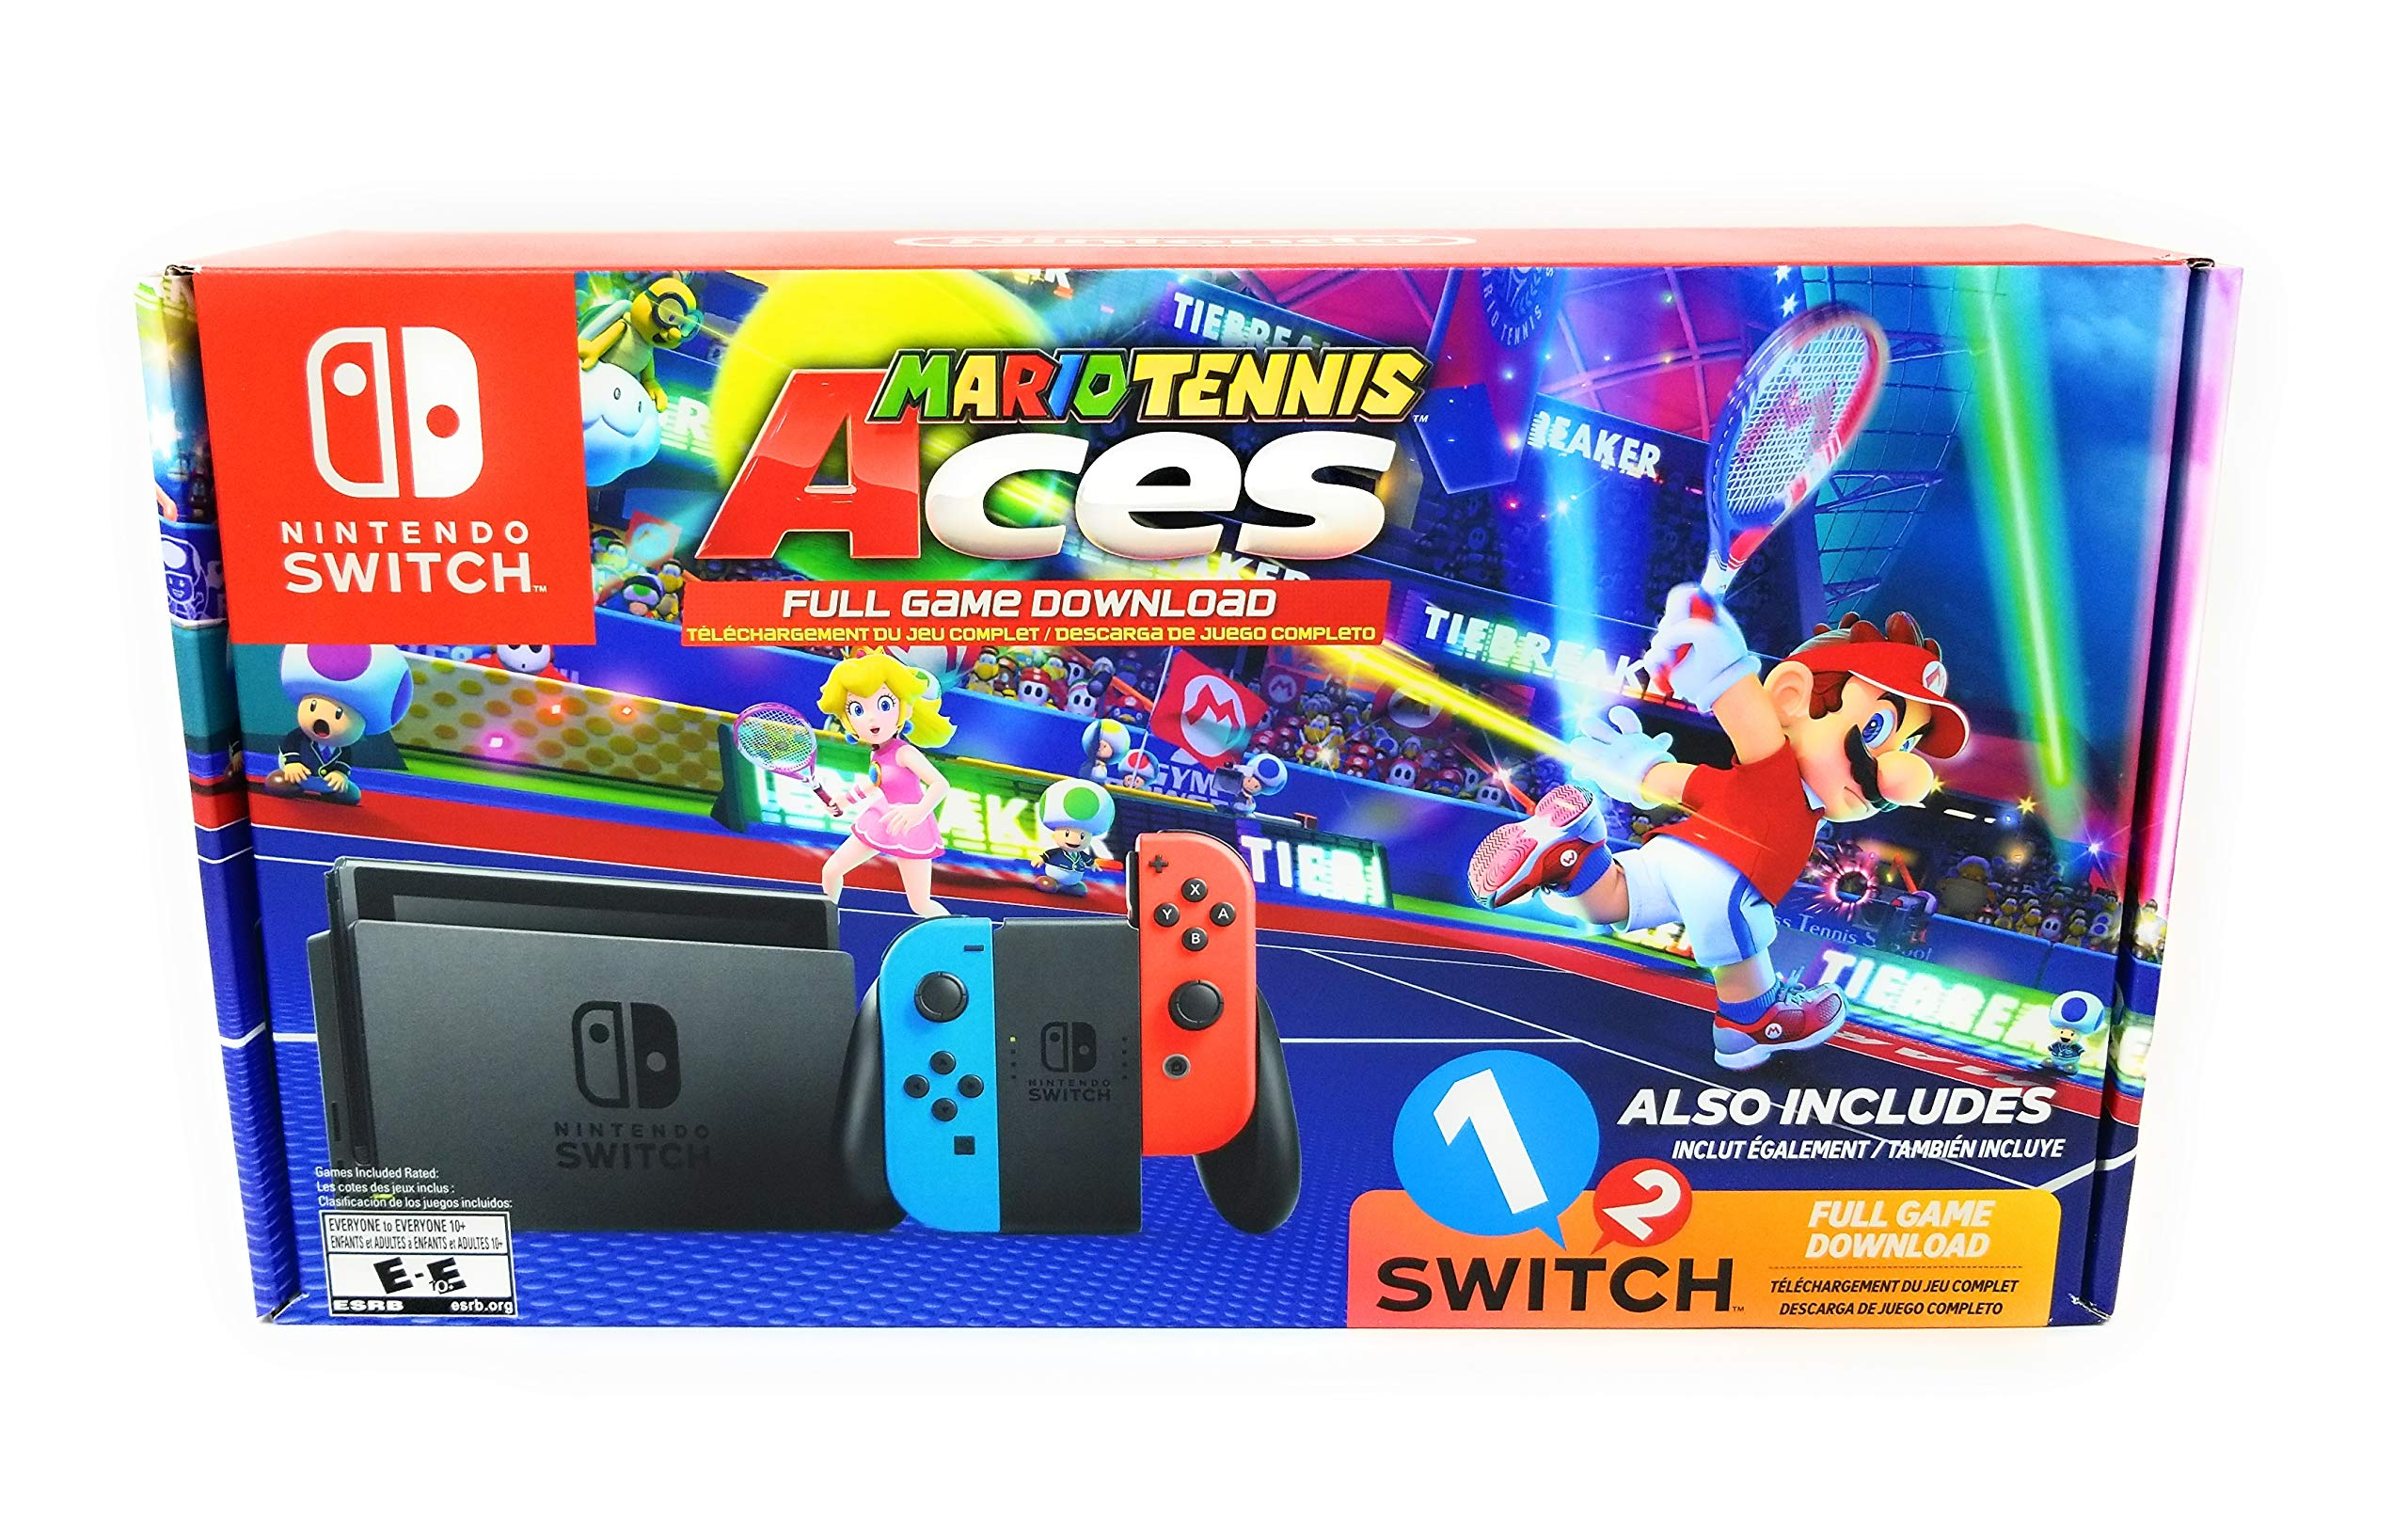 Nintendo Switch System Neon Blue Neon Red With Mario Tennis Aces